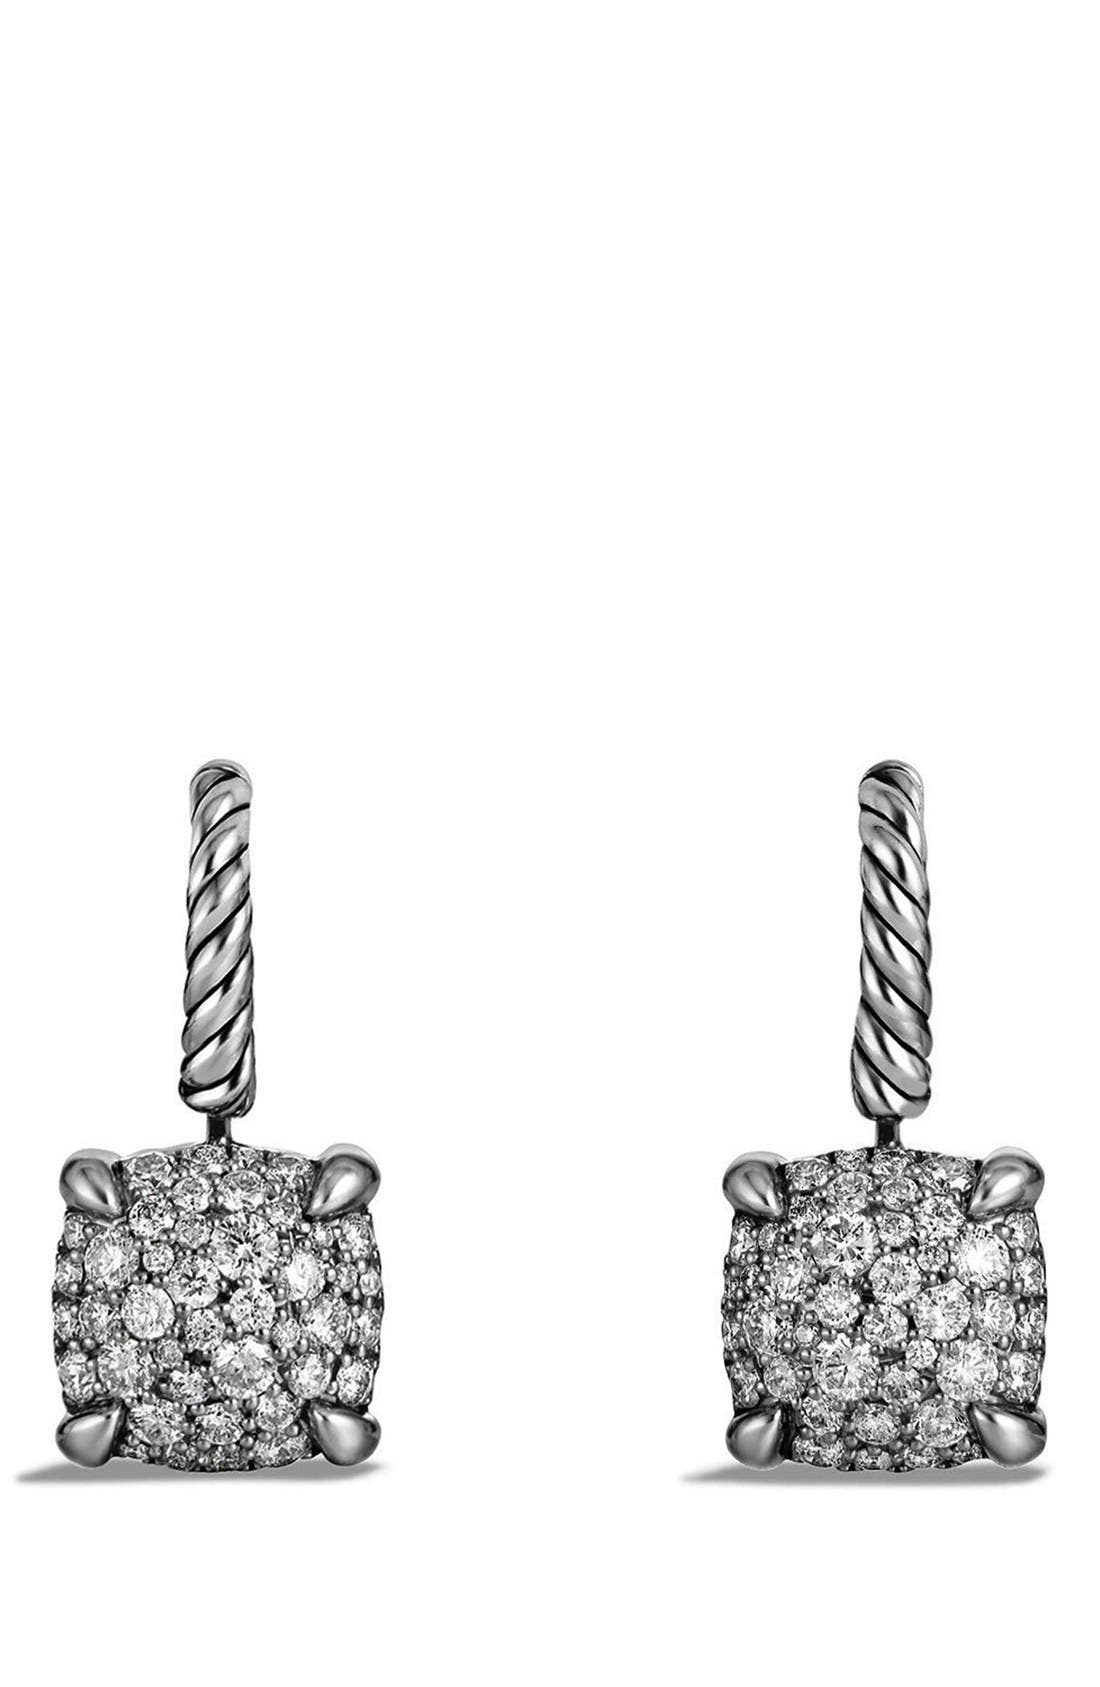 'Châtelaine' Drop Earrings with Diamonds,                         Main,                         color, Silver